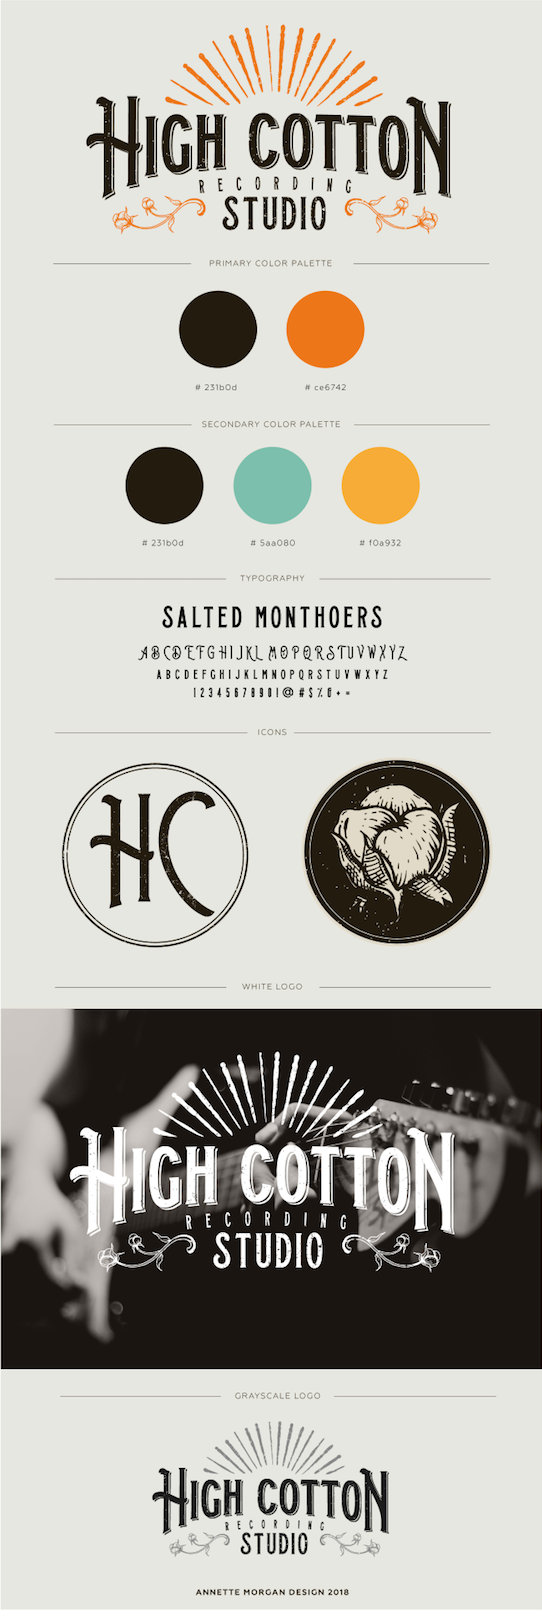 - Miniature style guide for client including hex codes, type face, icon options, and alternate logo usage.